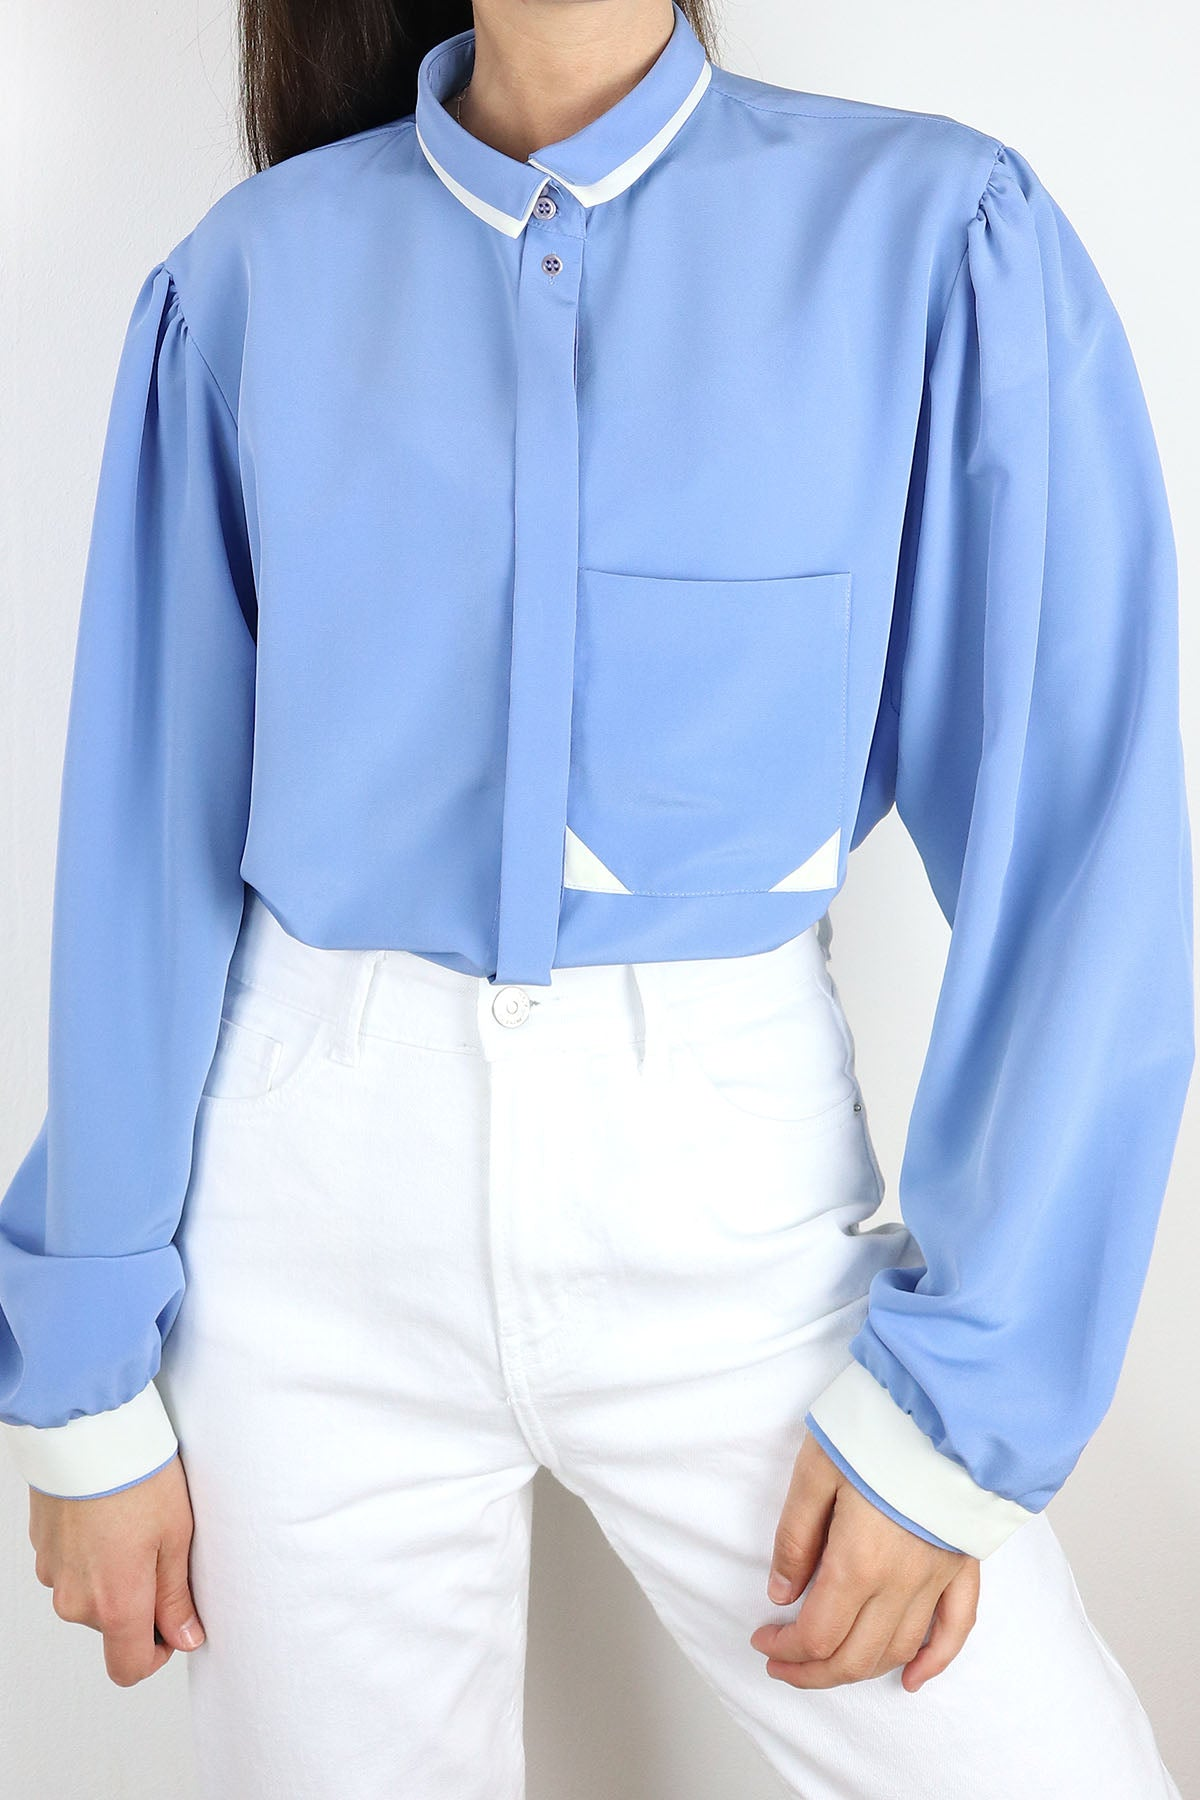 Vintage Blouse With Contrast Details